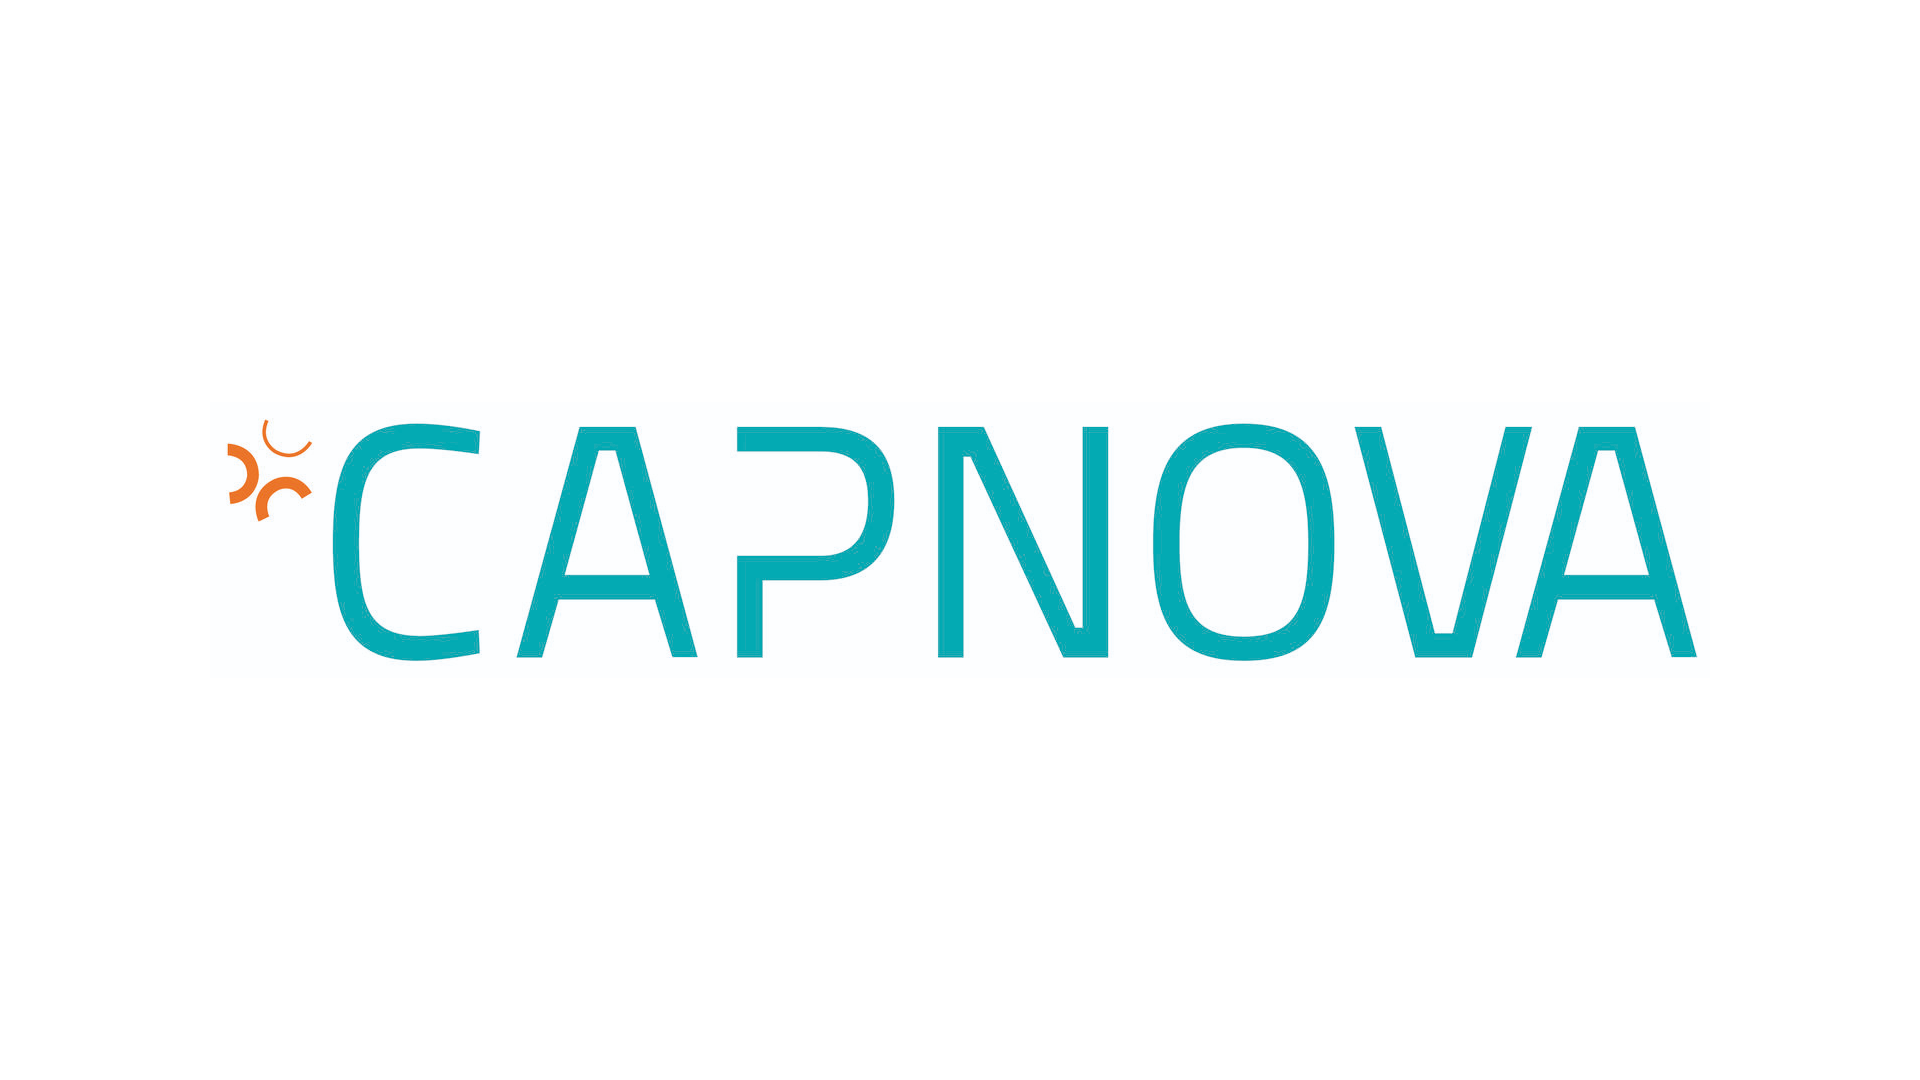 CAPNOVA   CAPNOVA contributes to turning the ideas of innovative entrepreneurs into successful businesses by investing governmental, regional and own venture capital.